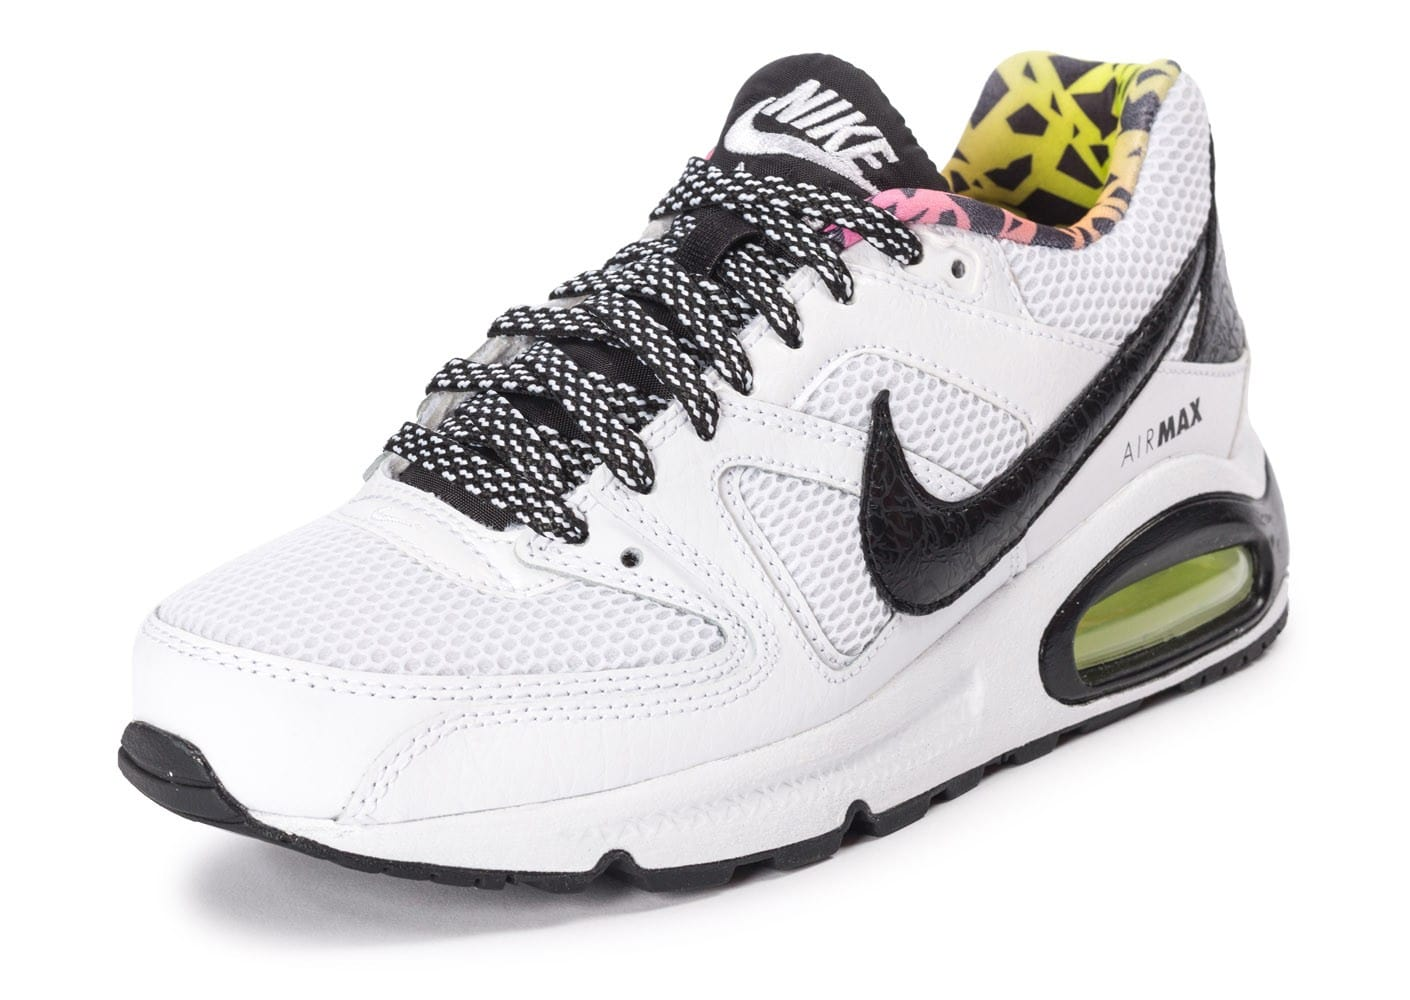 check out 9c678 b5f52 ... Chaussures Nike Air Max Command FB Junior vue avant ...